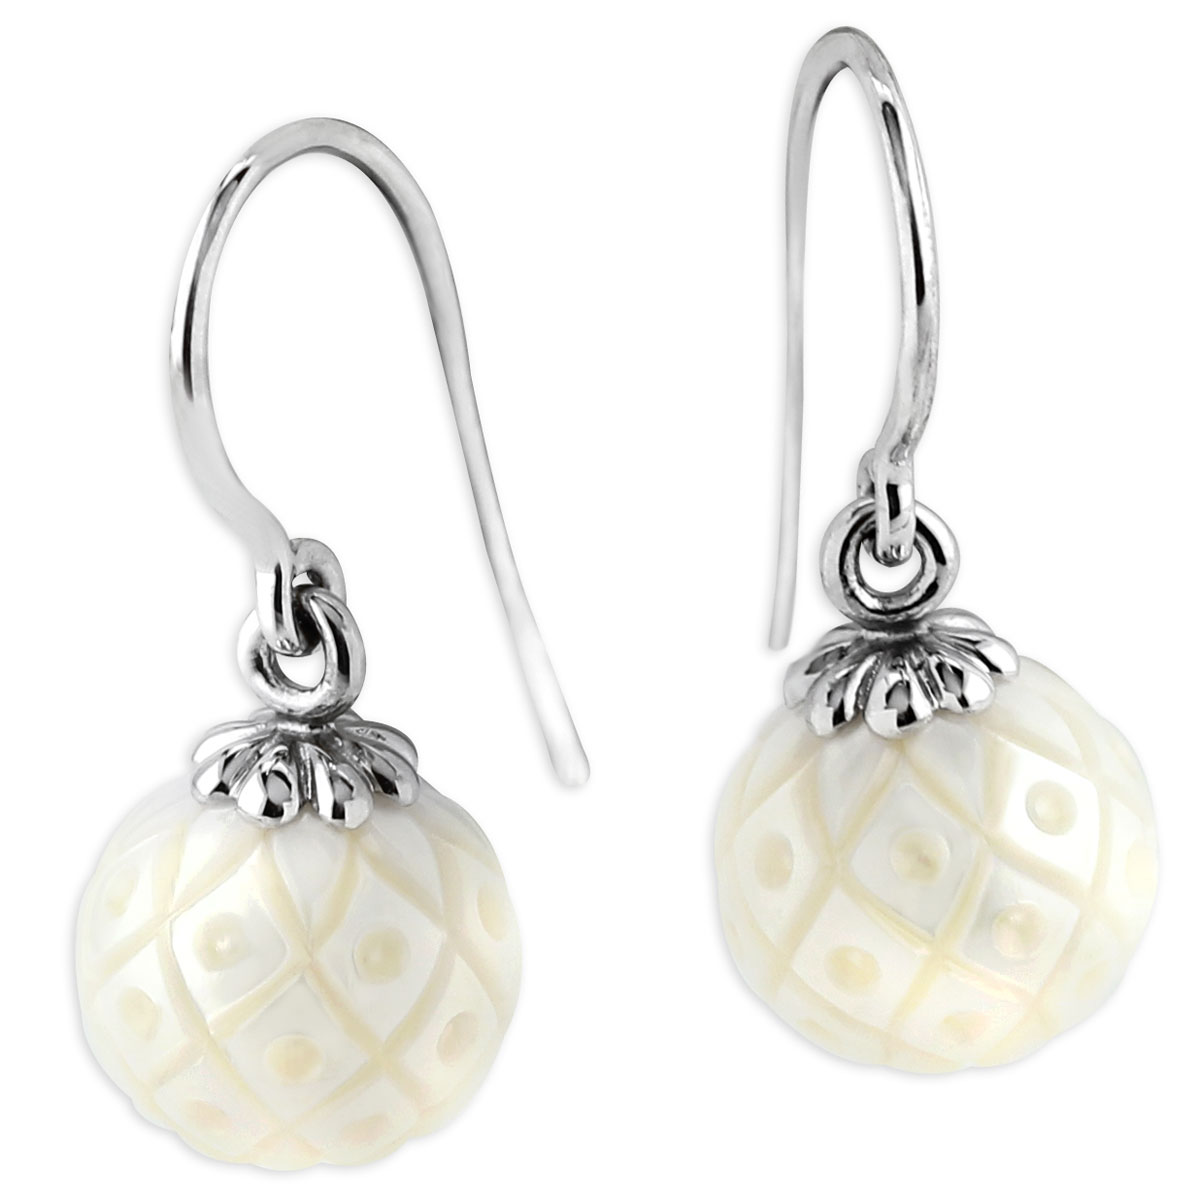 342104-Galatea Freshwater Pearl WG Earrings